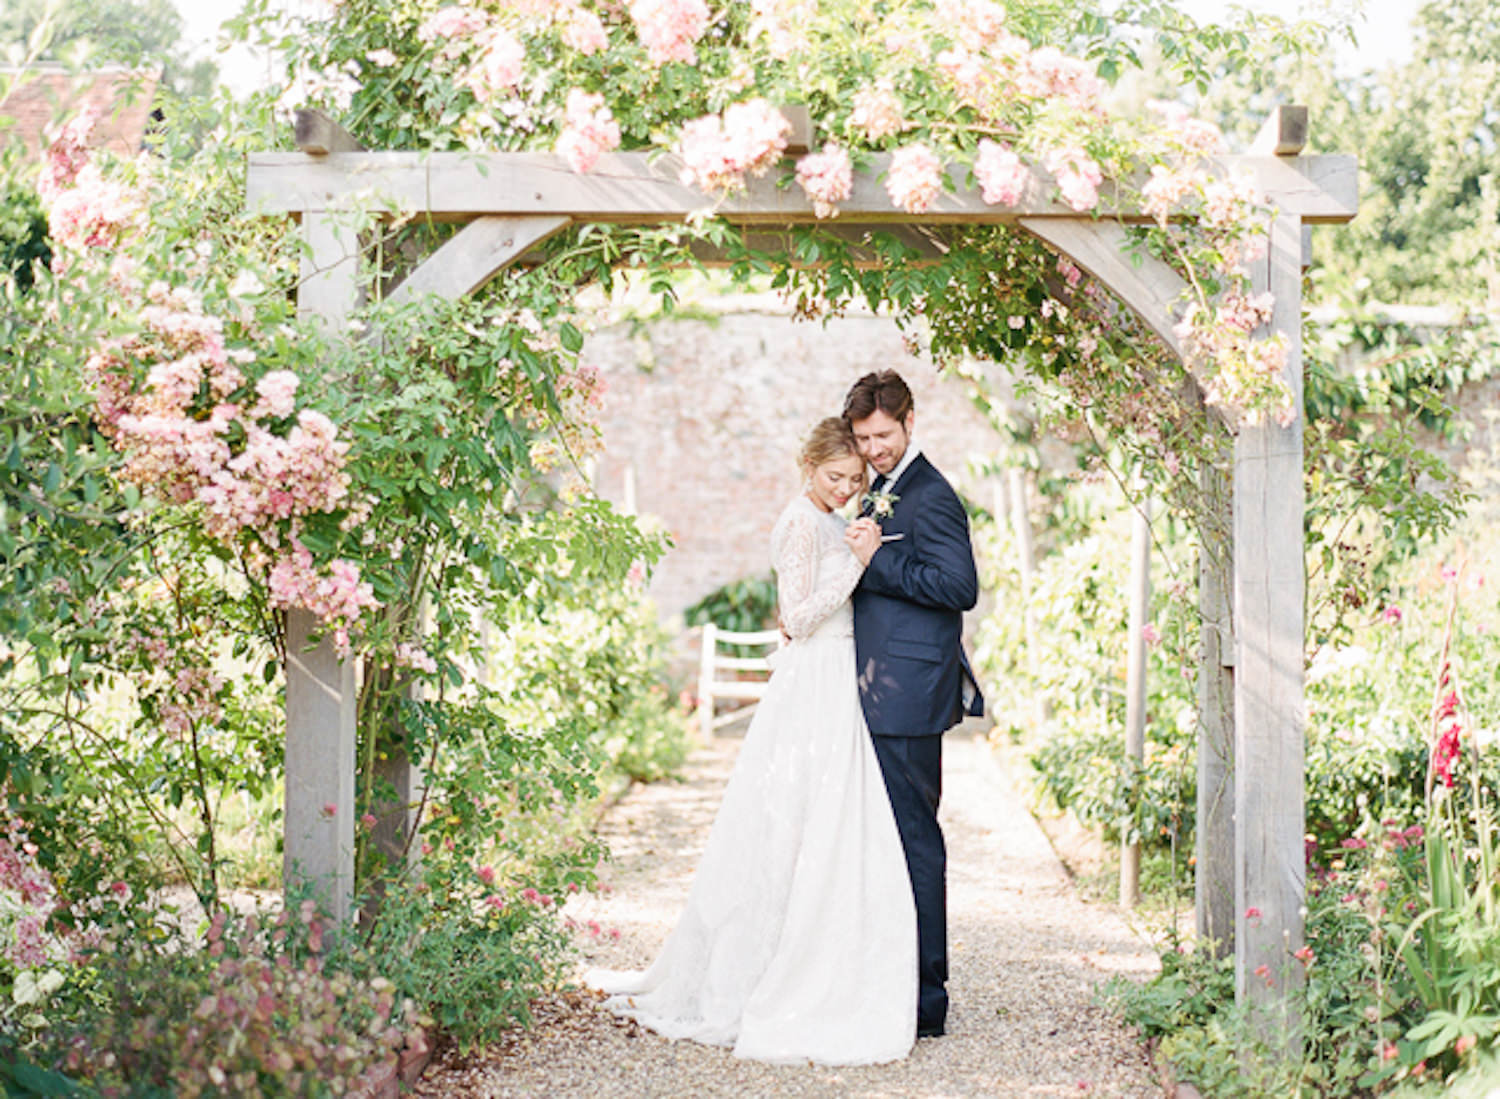 Fine art wedding photography ideas with The Events Designers and Julie Michaelsen Photography